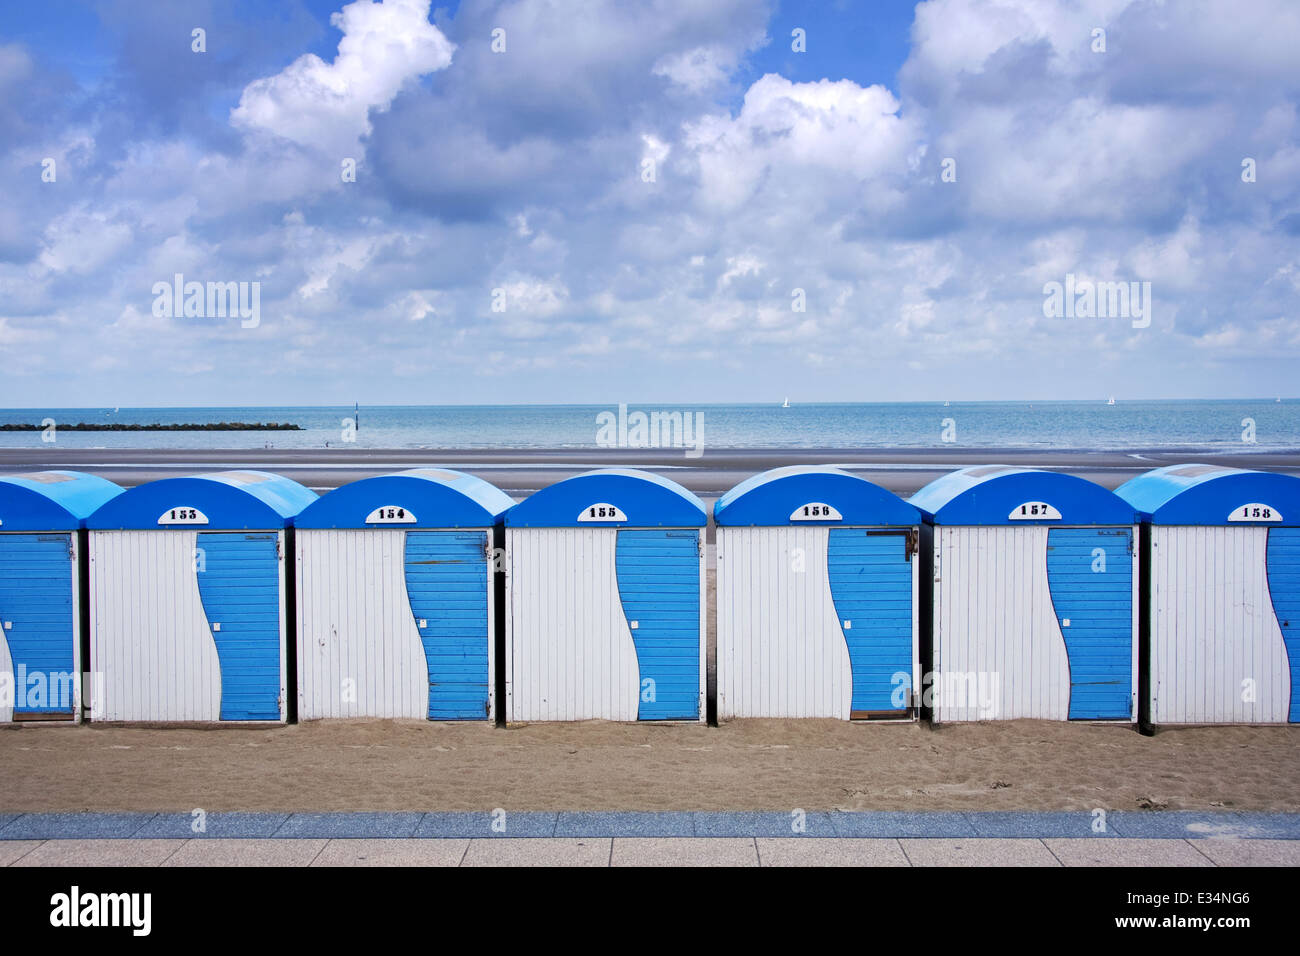 Dunkerque Malo Les Bains Beach Huts France - Stock Image